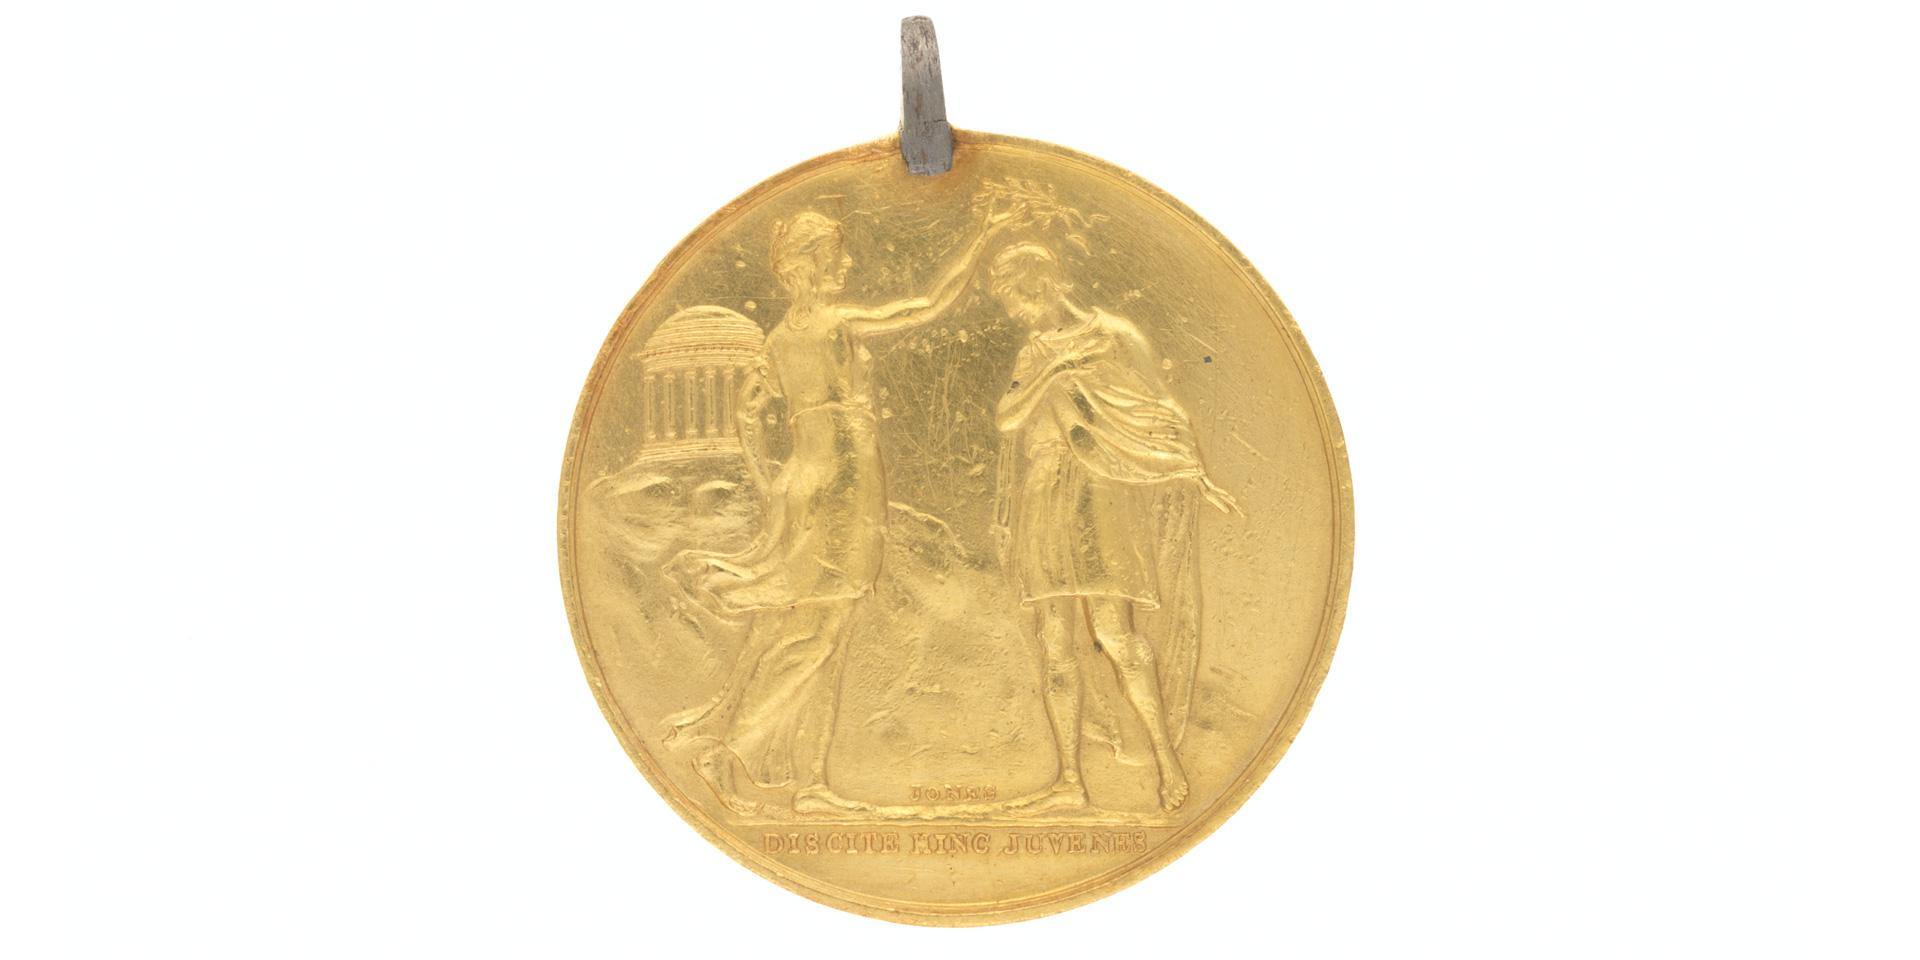 Gold Regimental Medal awarded by the 77th (East Middlesex) Regiment of Foot, c1820